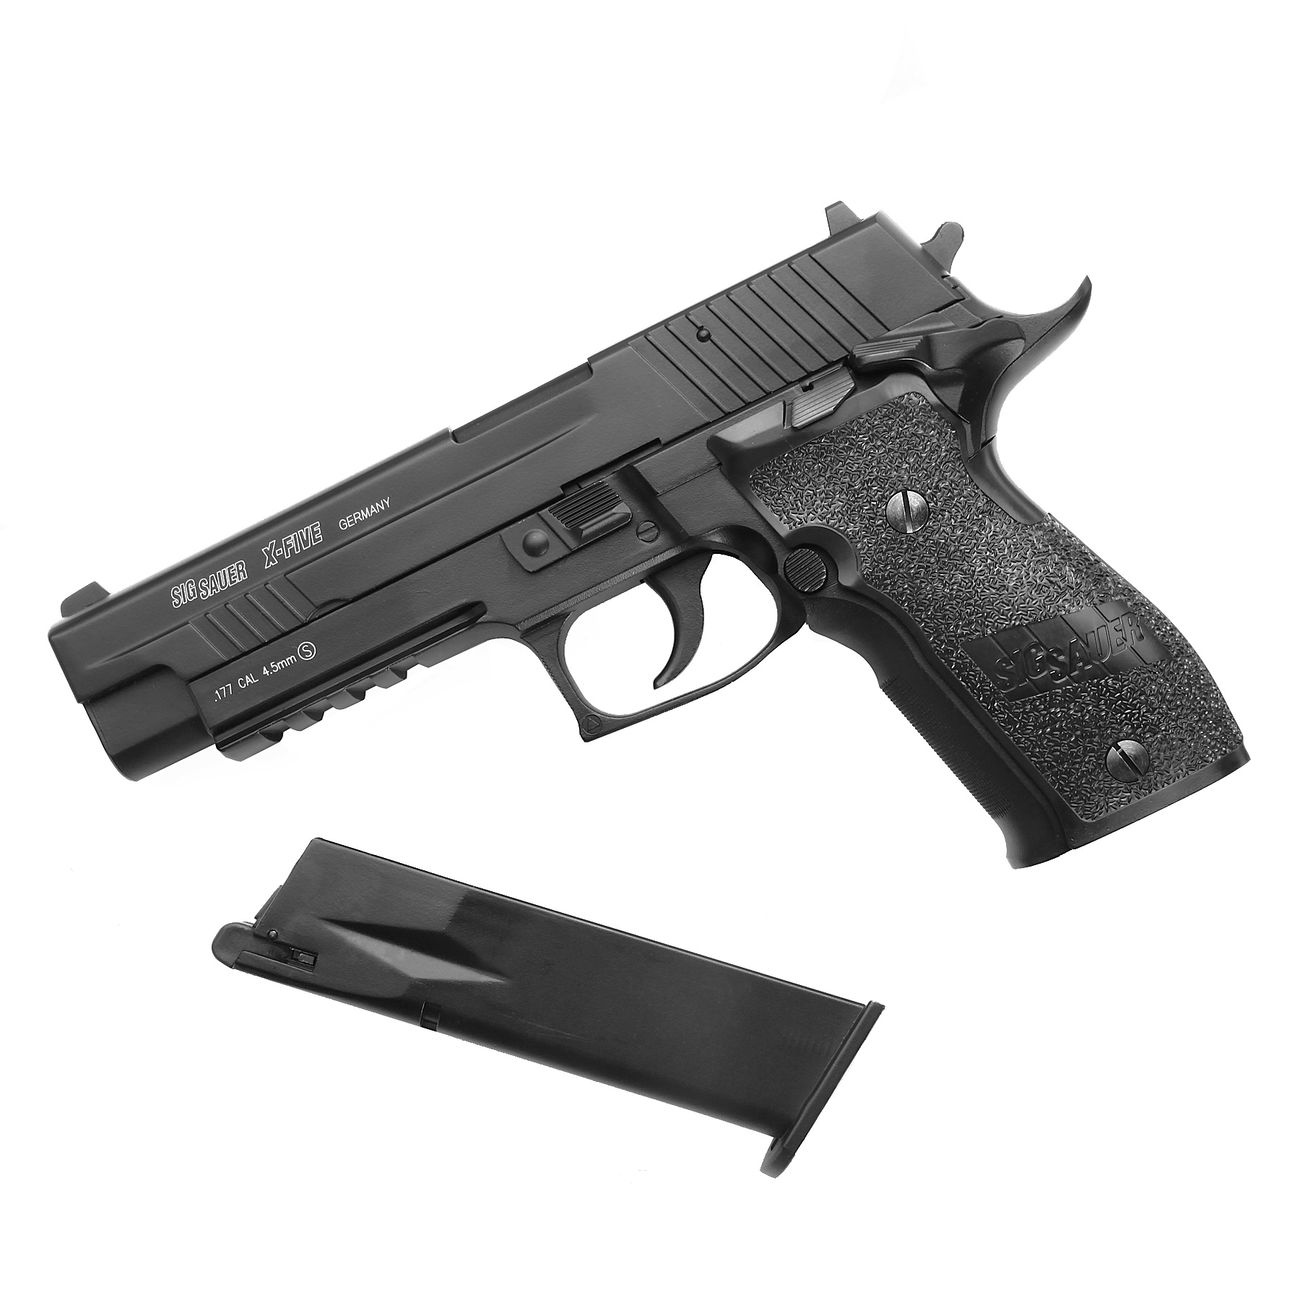 Cybergun Sig Sauer P226 X-Five Vollmetall CO2 Luftpistole 4,5mm BB 4